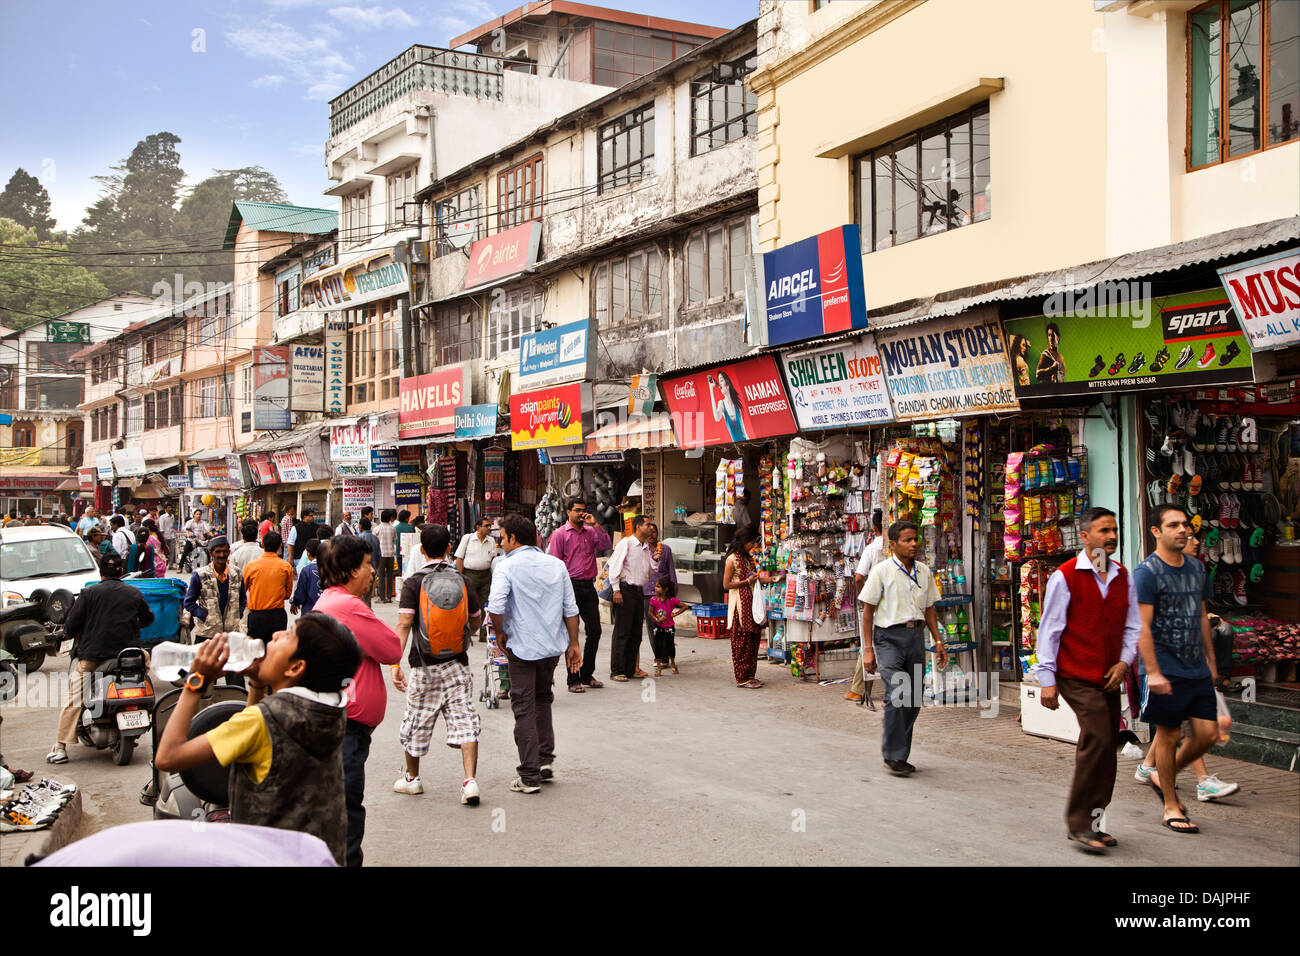 People moving on the road, Mall Road, Mussoorie, Uttarakhand, India - Stock Image